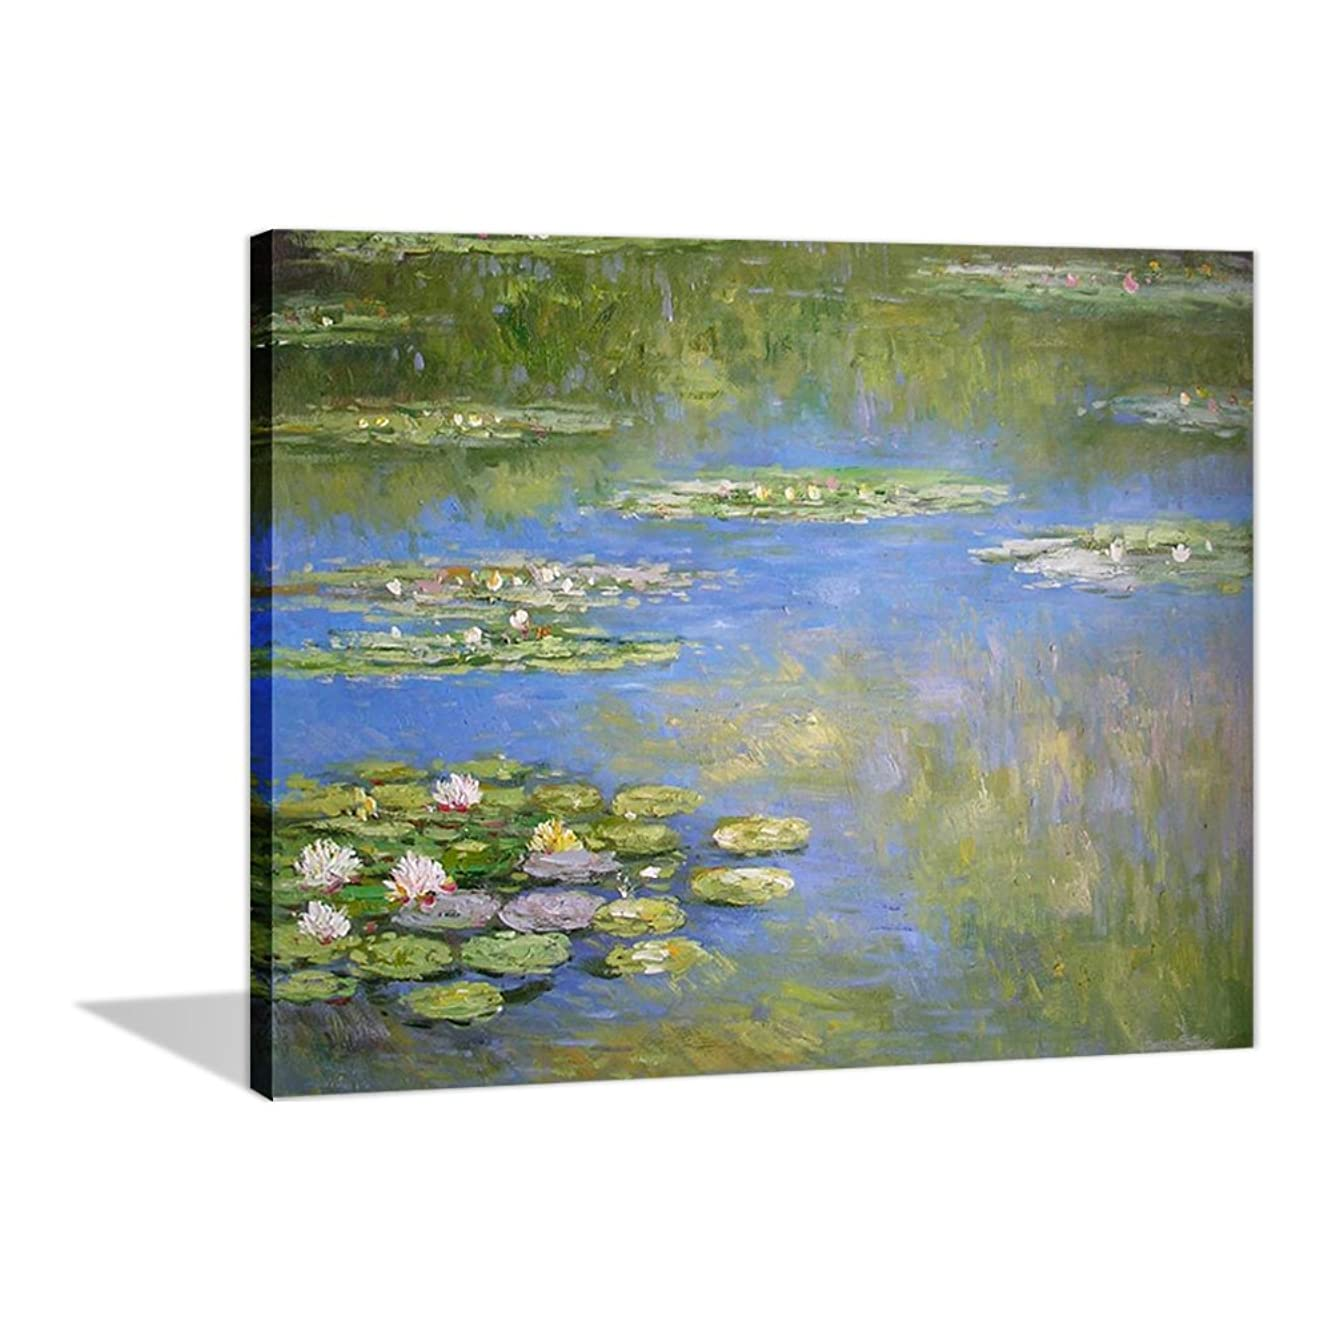 Paint by Numbers 16 x 20 inch Canvas Art Kit DIY Oil Painting for Kids/Students/Adults Beginner, Monet Water Lily